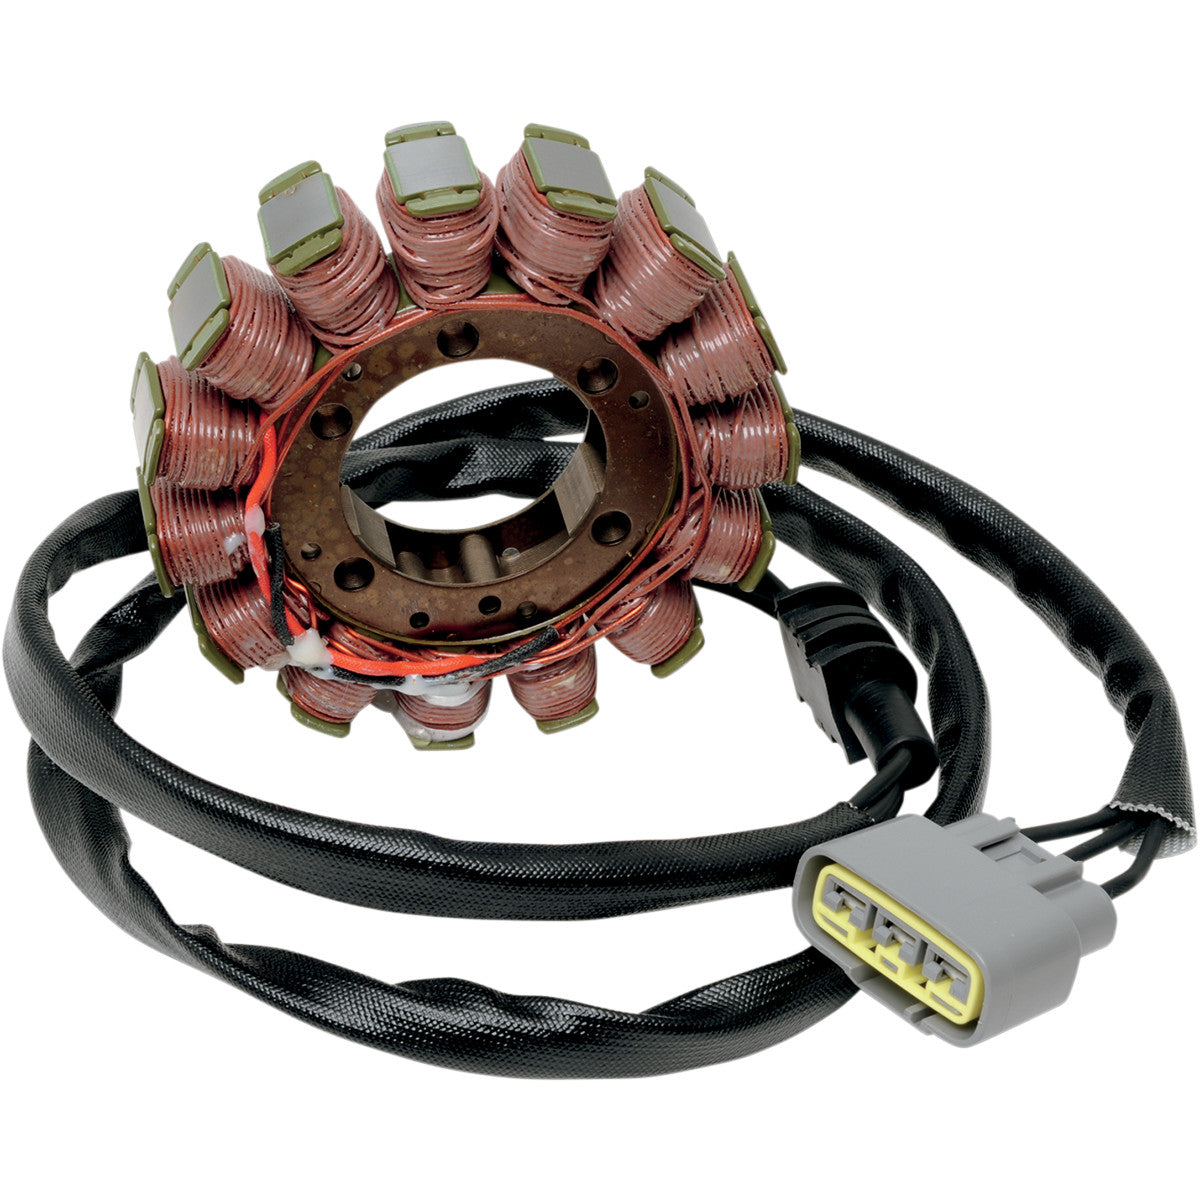 2112-0760 RICK'S MOTORSPORT ELECTRIC Alternator Stator STATOR YAMAHA